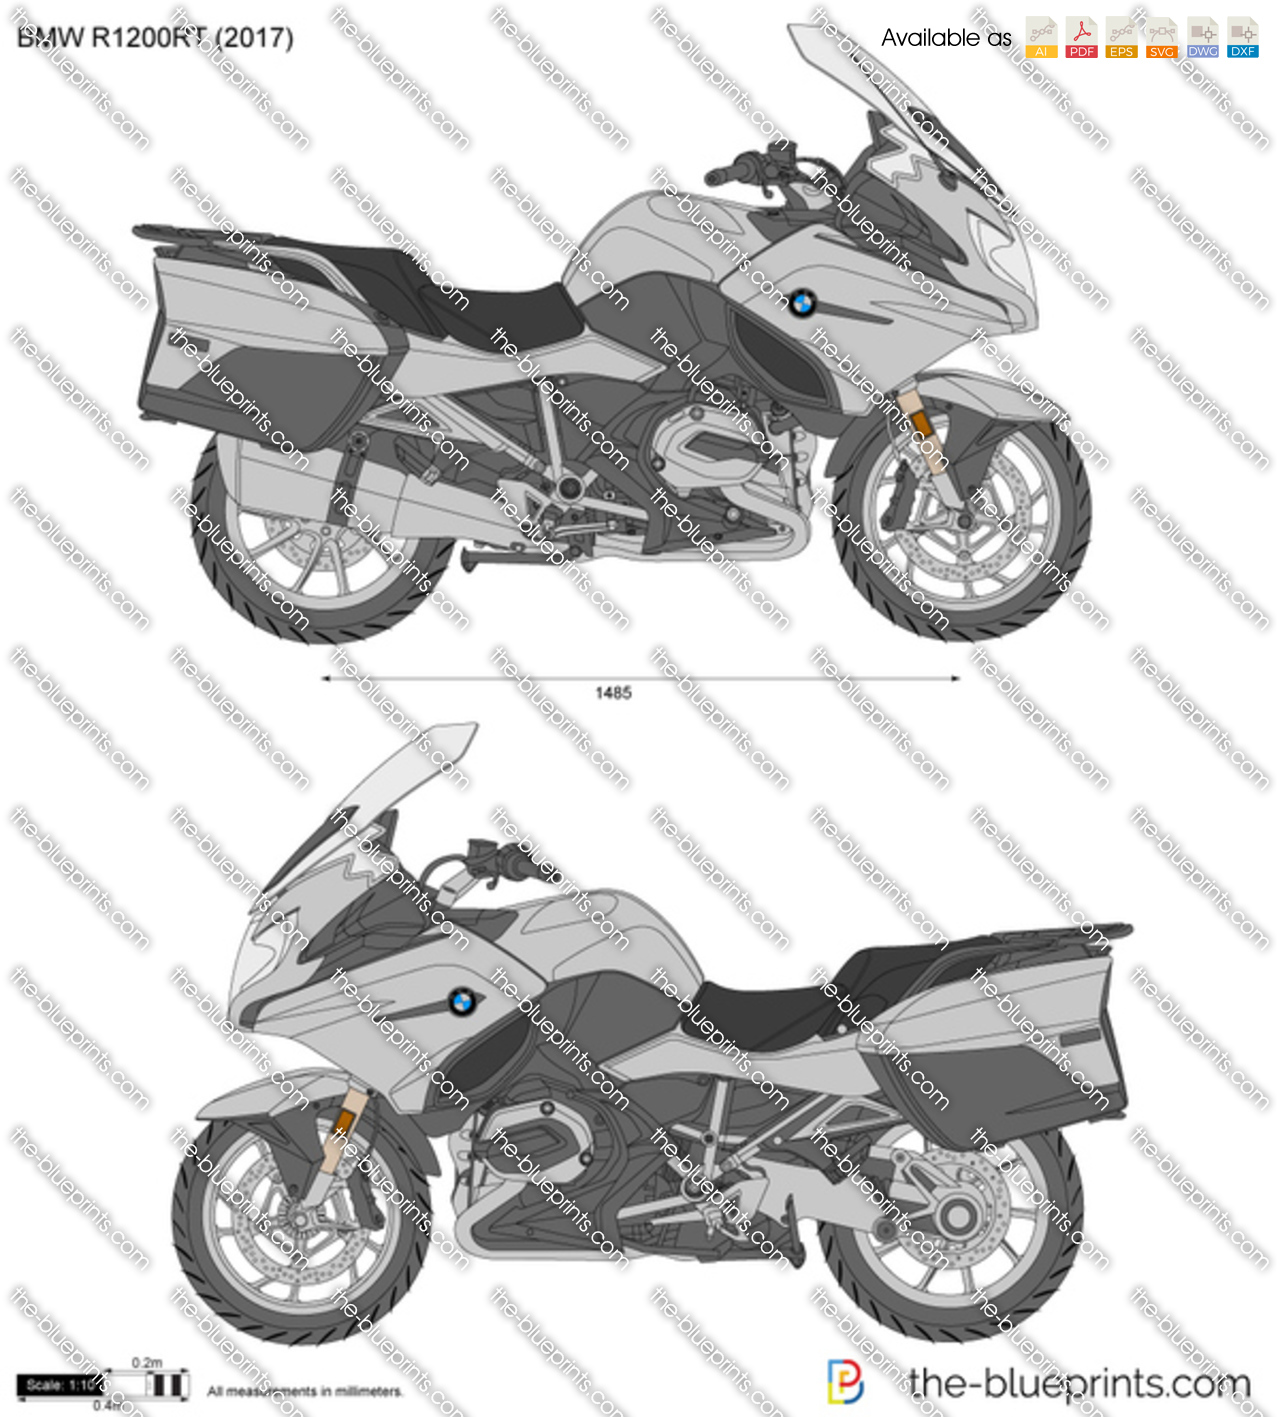 bmw r1200rt vector drawing. Black Bedroom Furniture Sets. Home Design Ideas